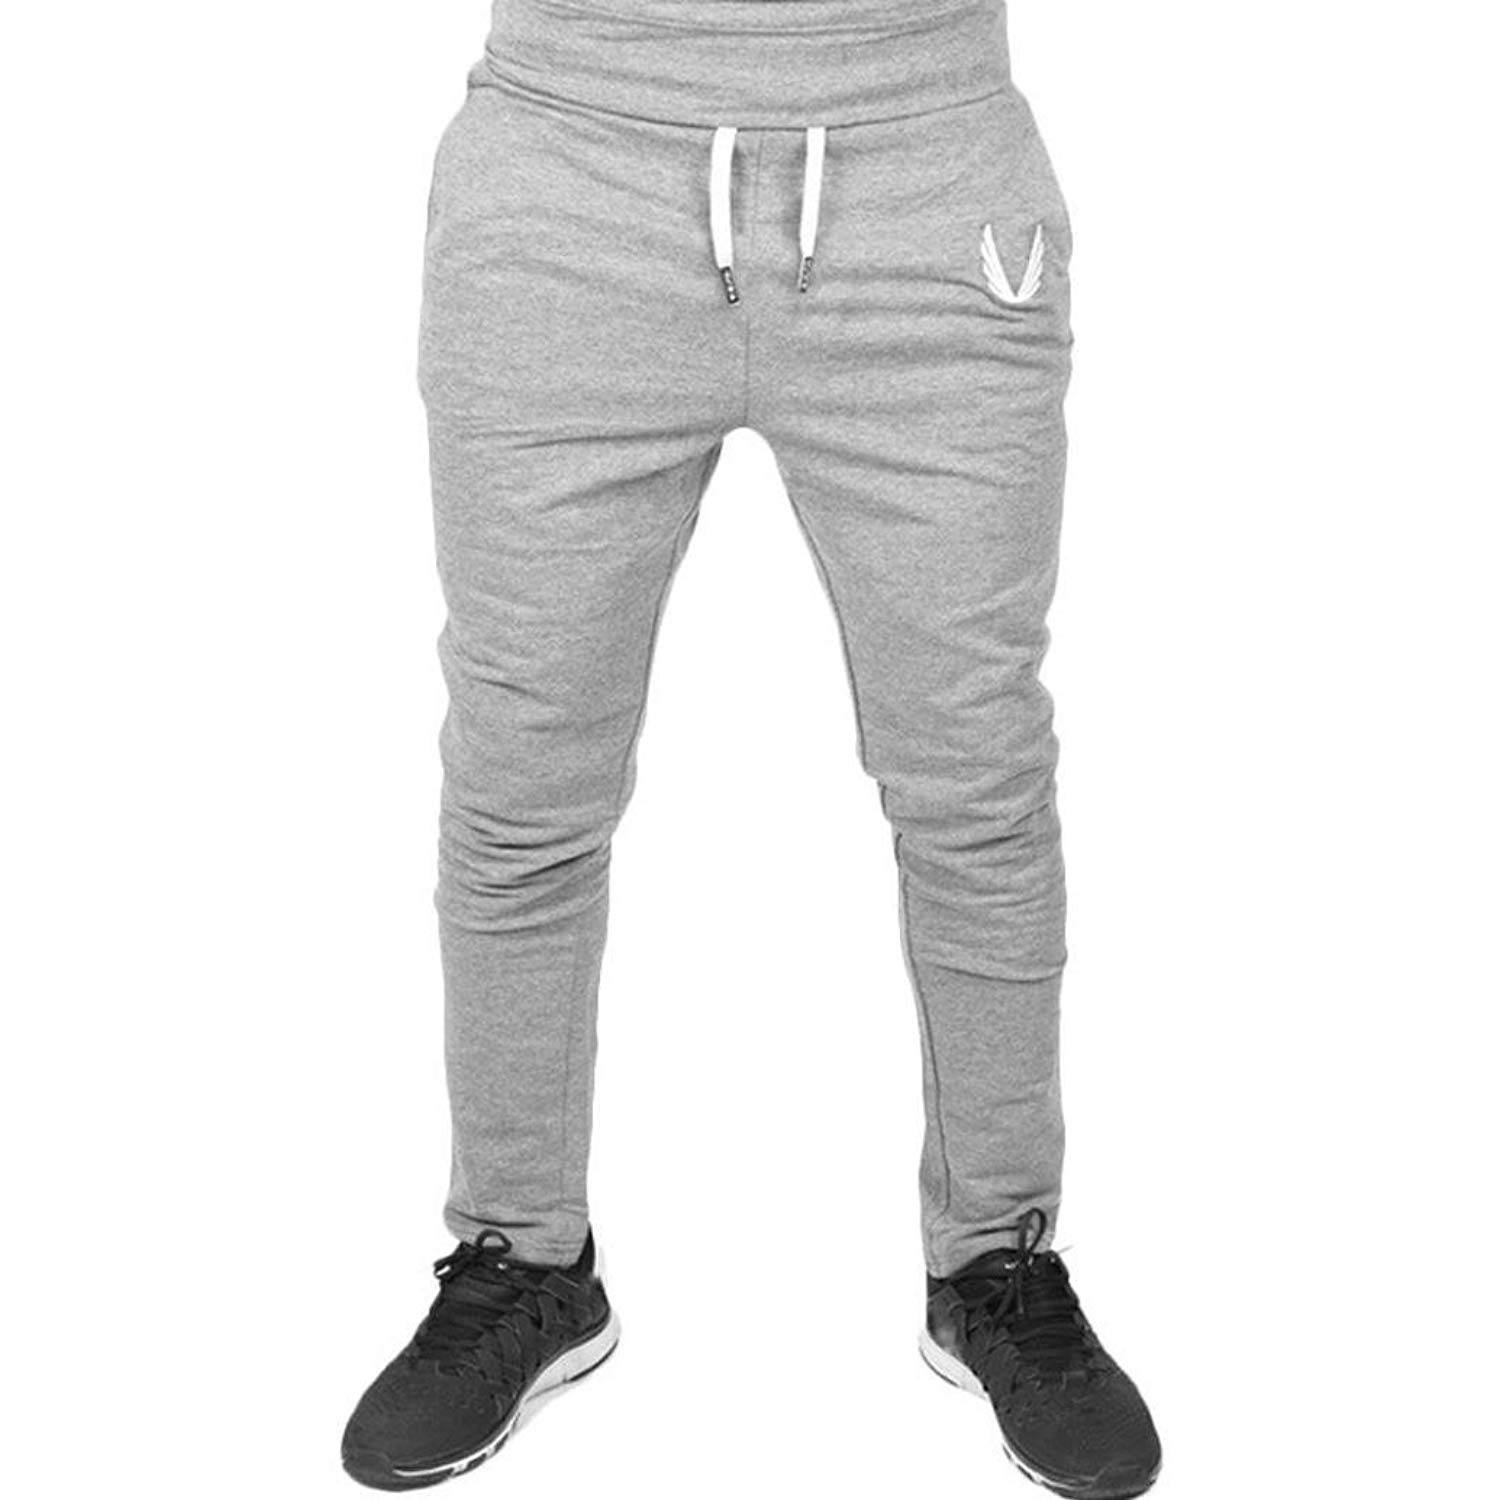 Morecome Men Sportswear Casual Elastic Pants,Fitness Workout Running Trousers for Men